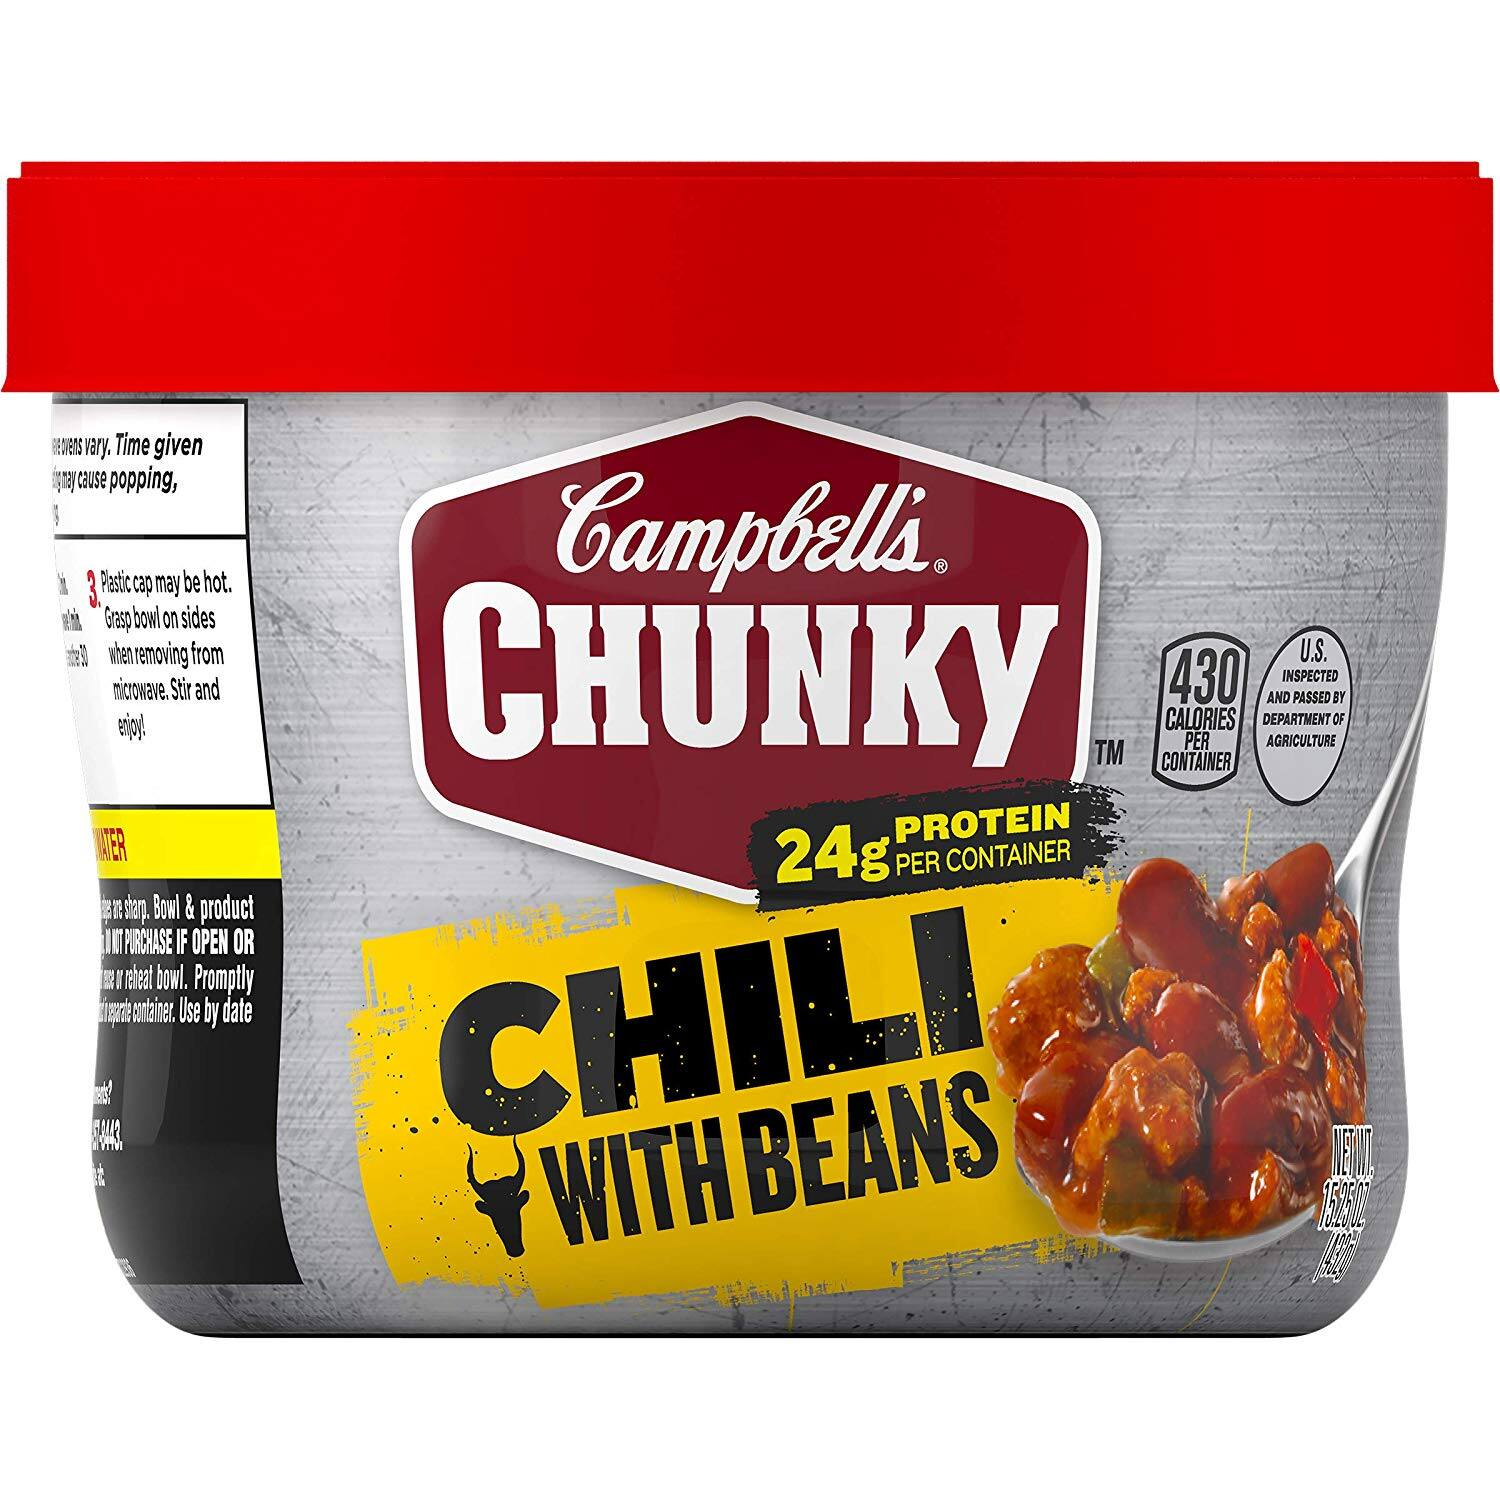 $0.39 Amazon Fresh - Campbell's Chunky Chili with Beans, 15.25 oz. Microwavable Bowl YMMV